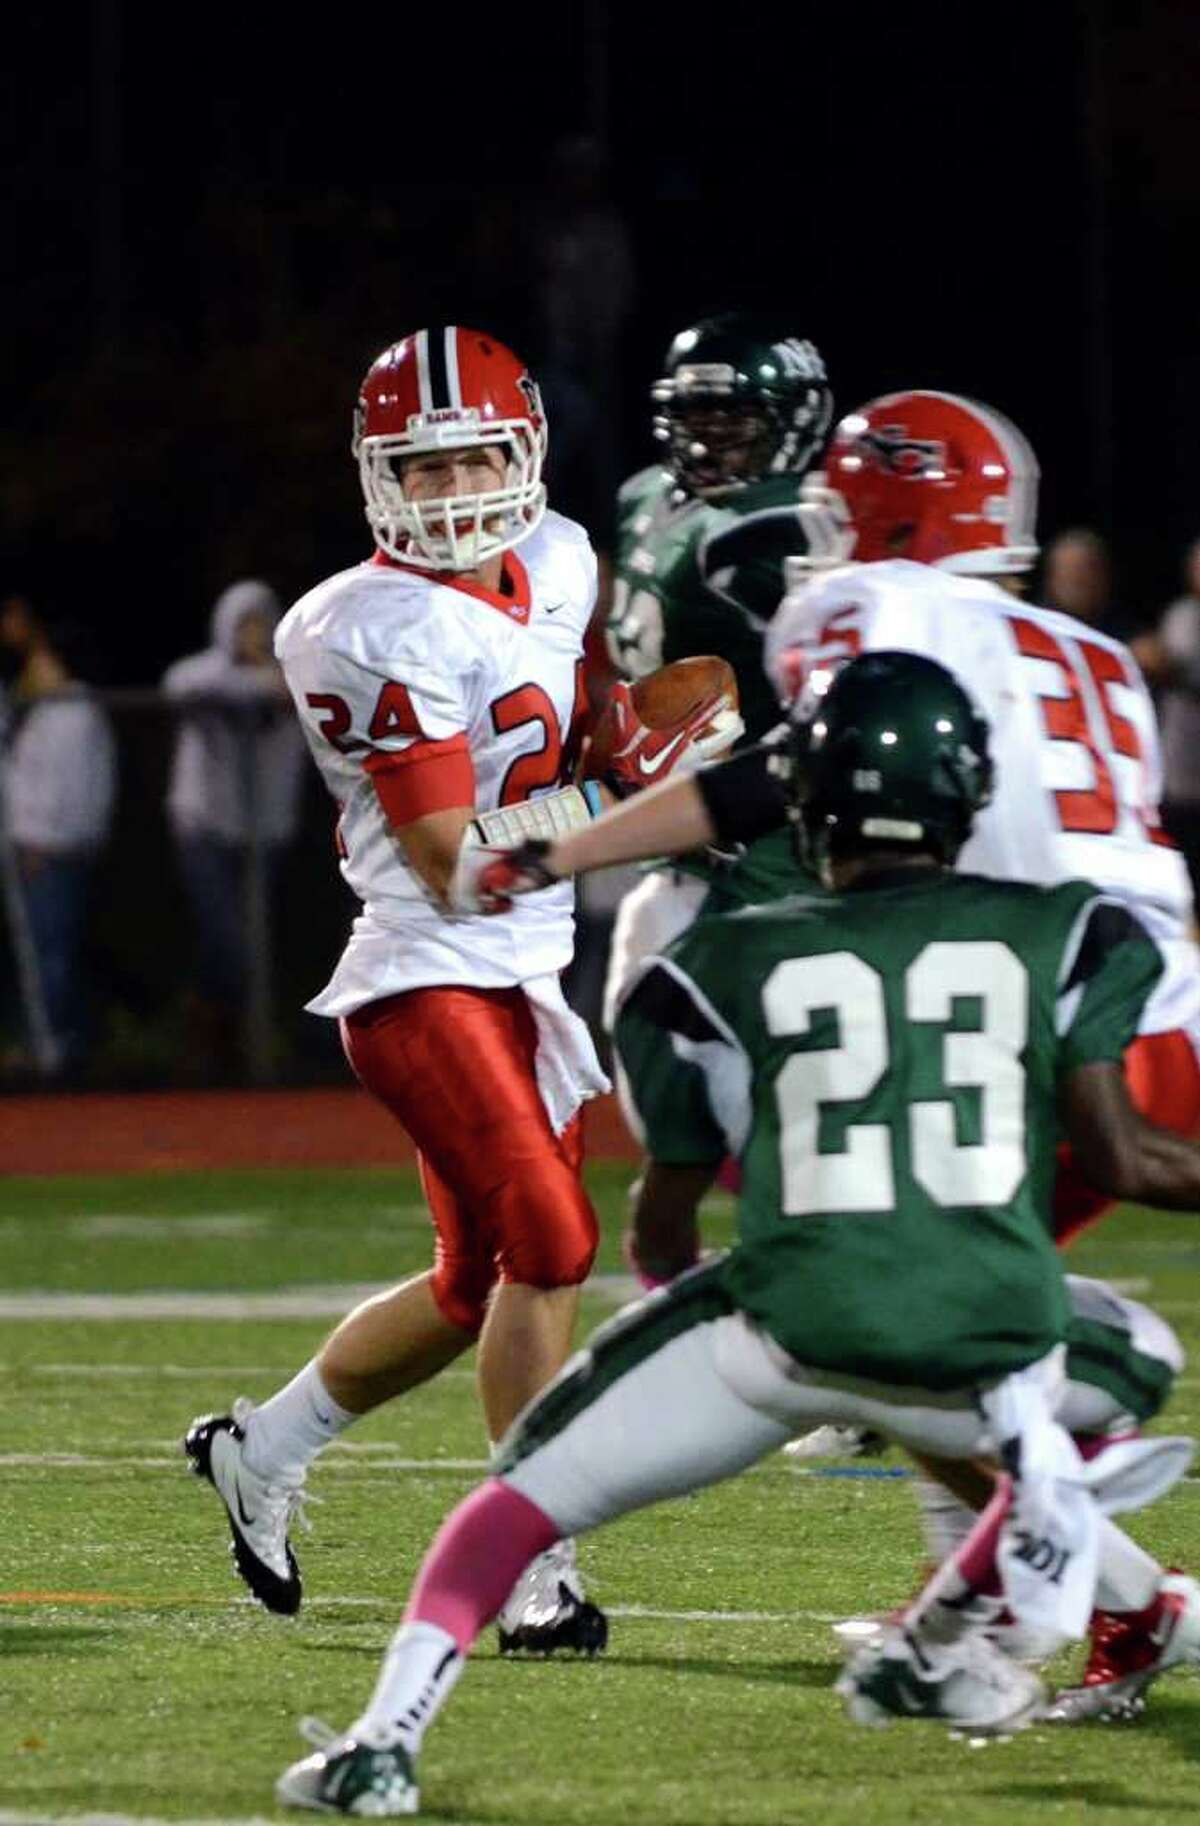 New Canaan's Patrick Newton (24) carries the ball during the football game against Norwalk at Norwalk High School on Friday, Oct. 14, 2011.